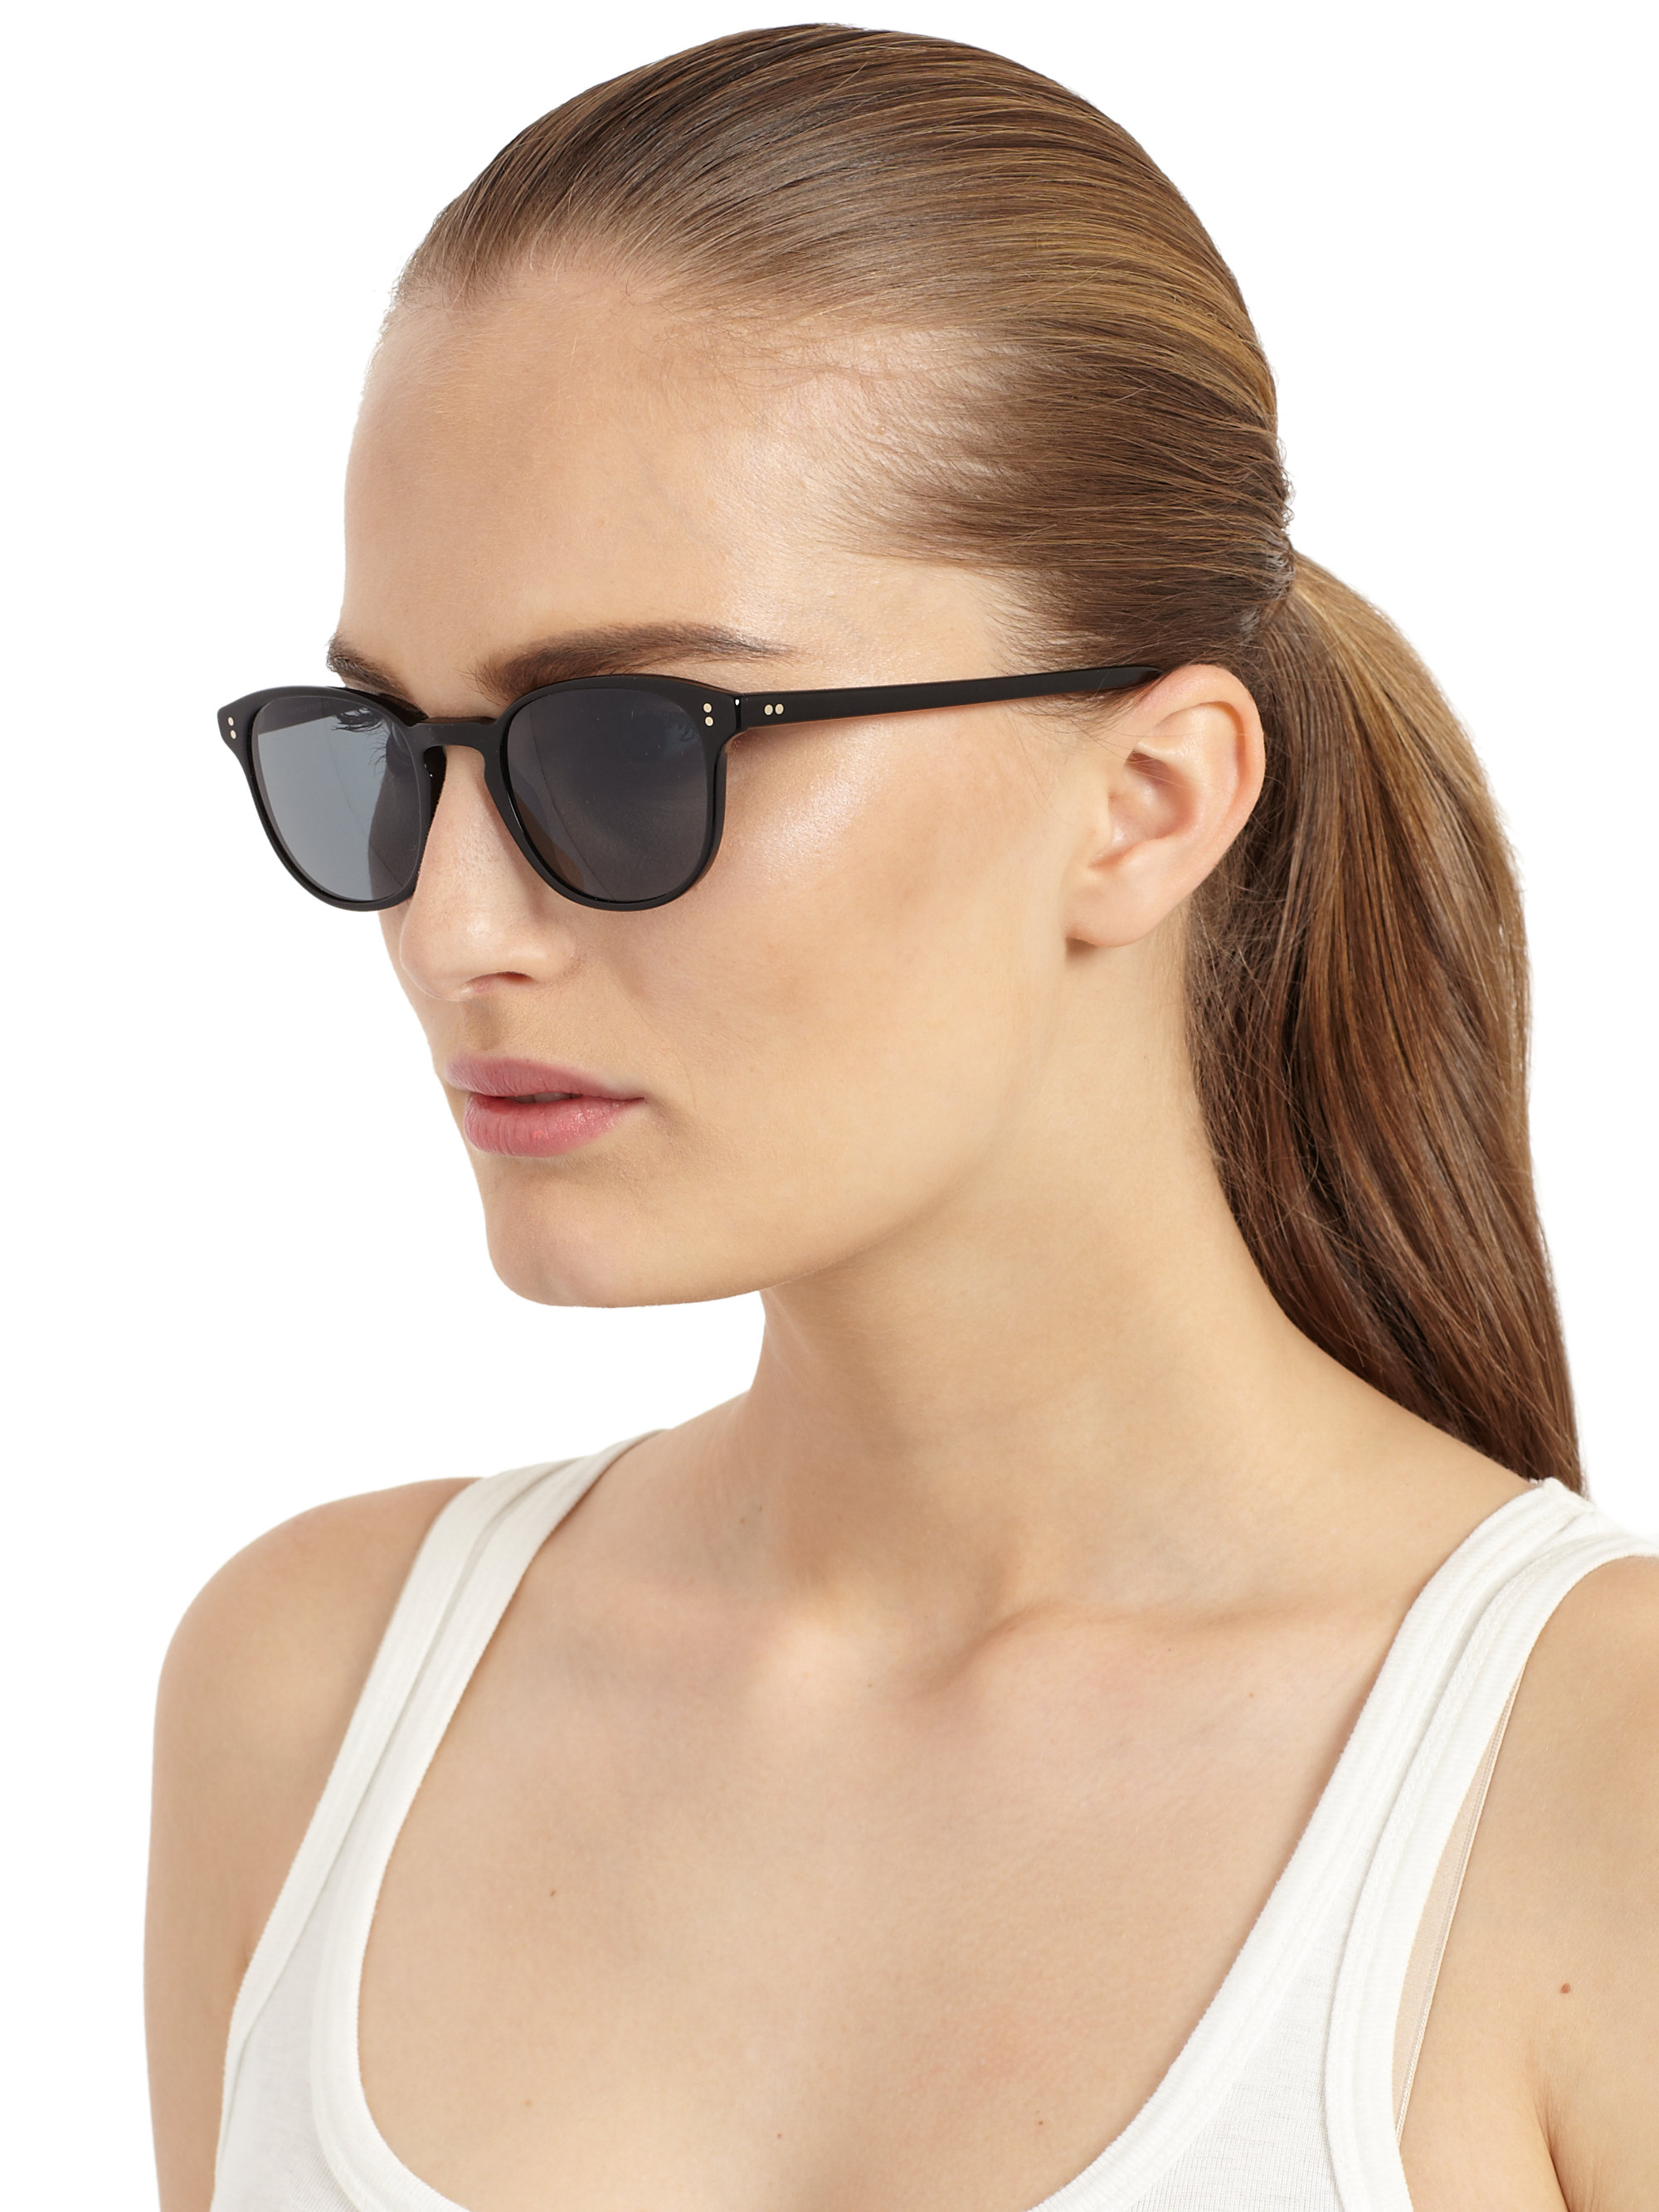 Keyhole Sunglasses  oliver peoples fairmont vintage keyhole sunglasses in black for